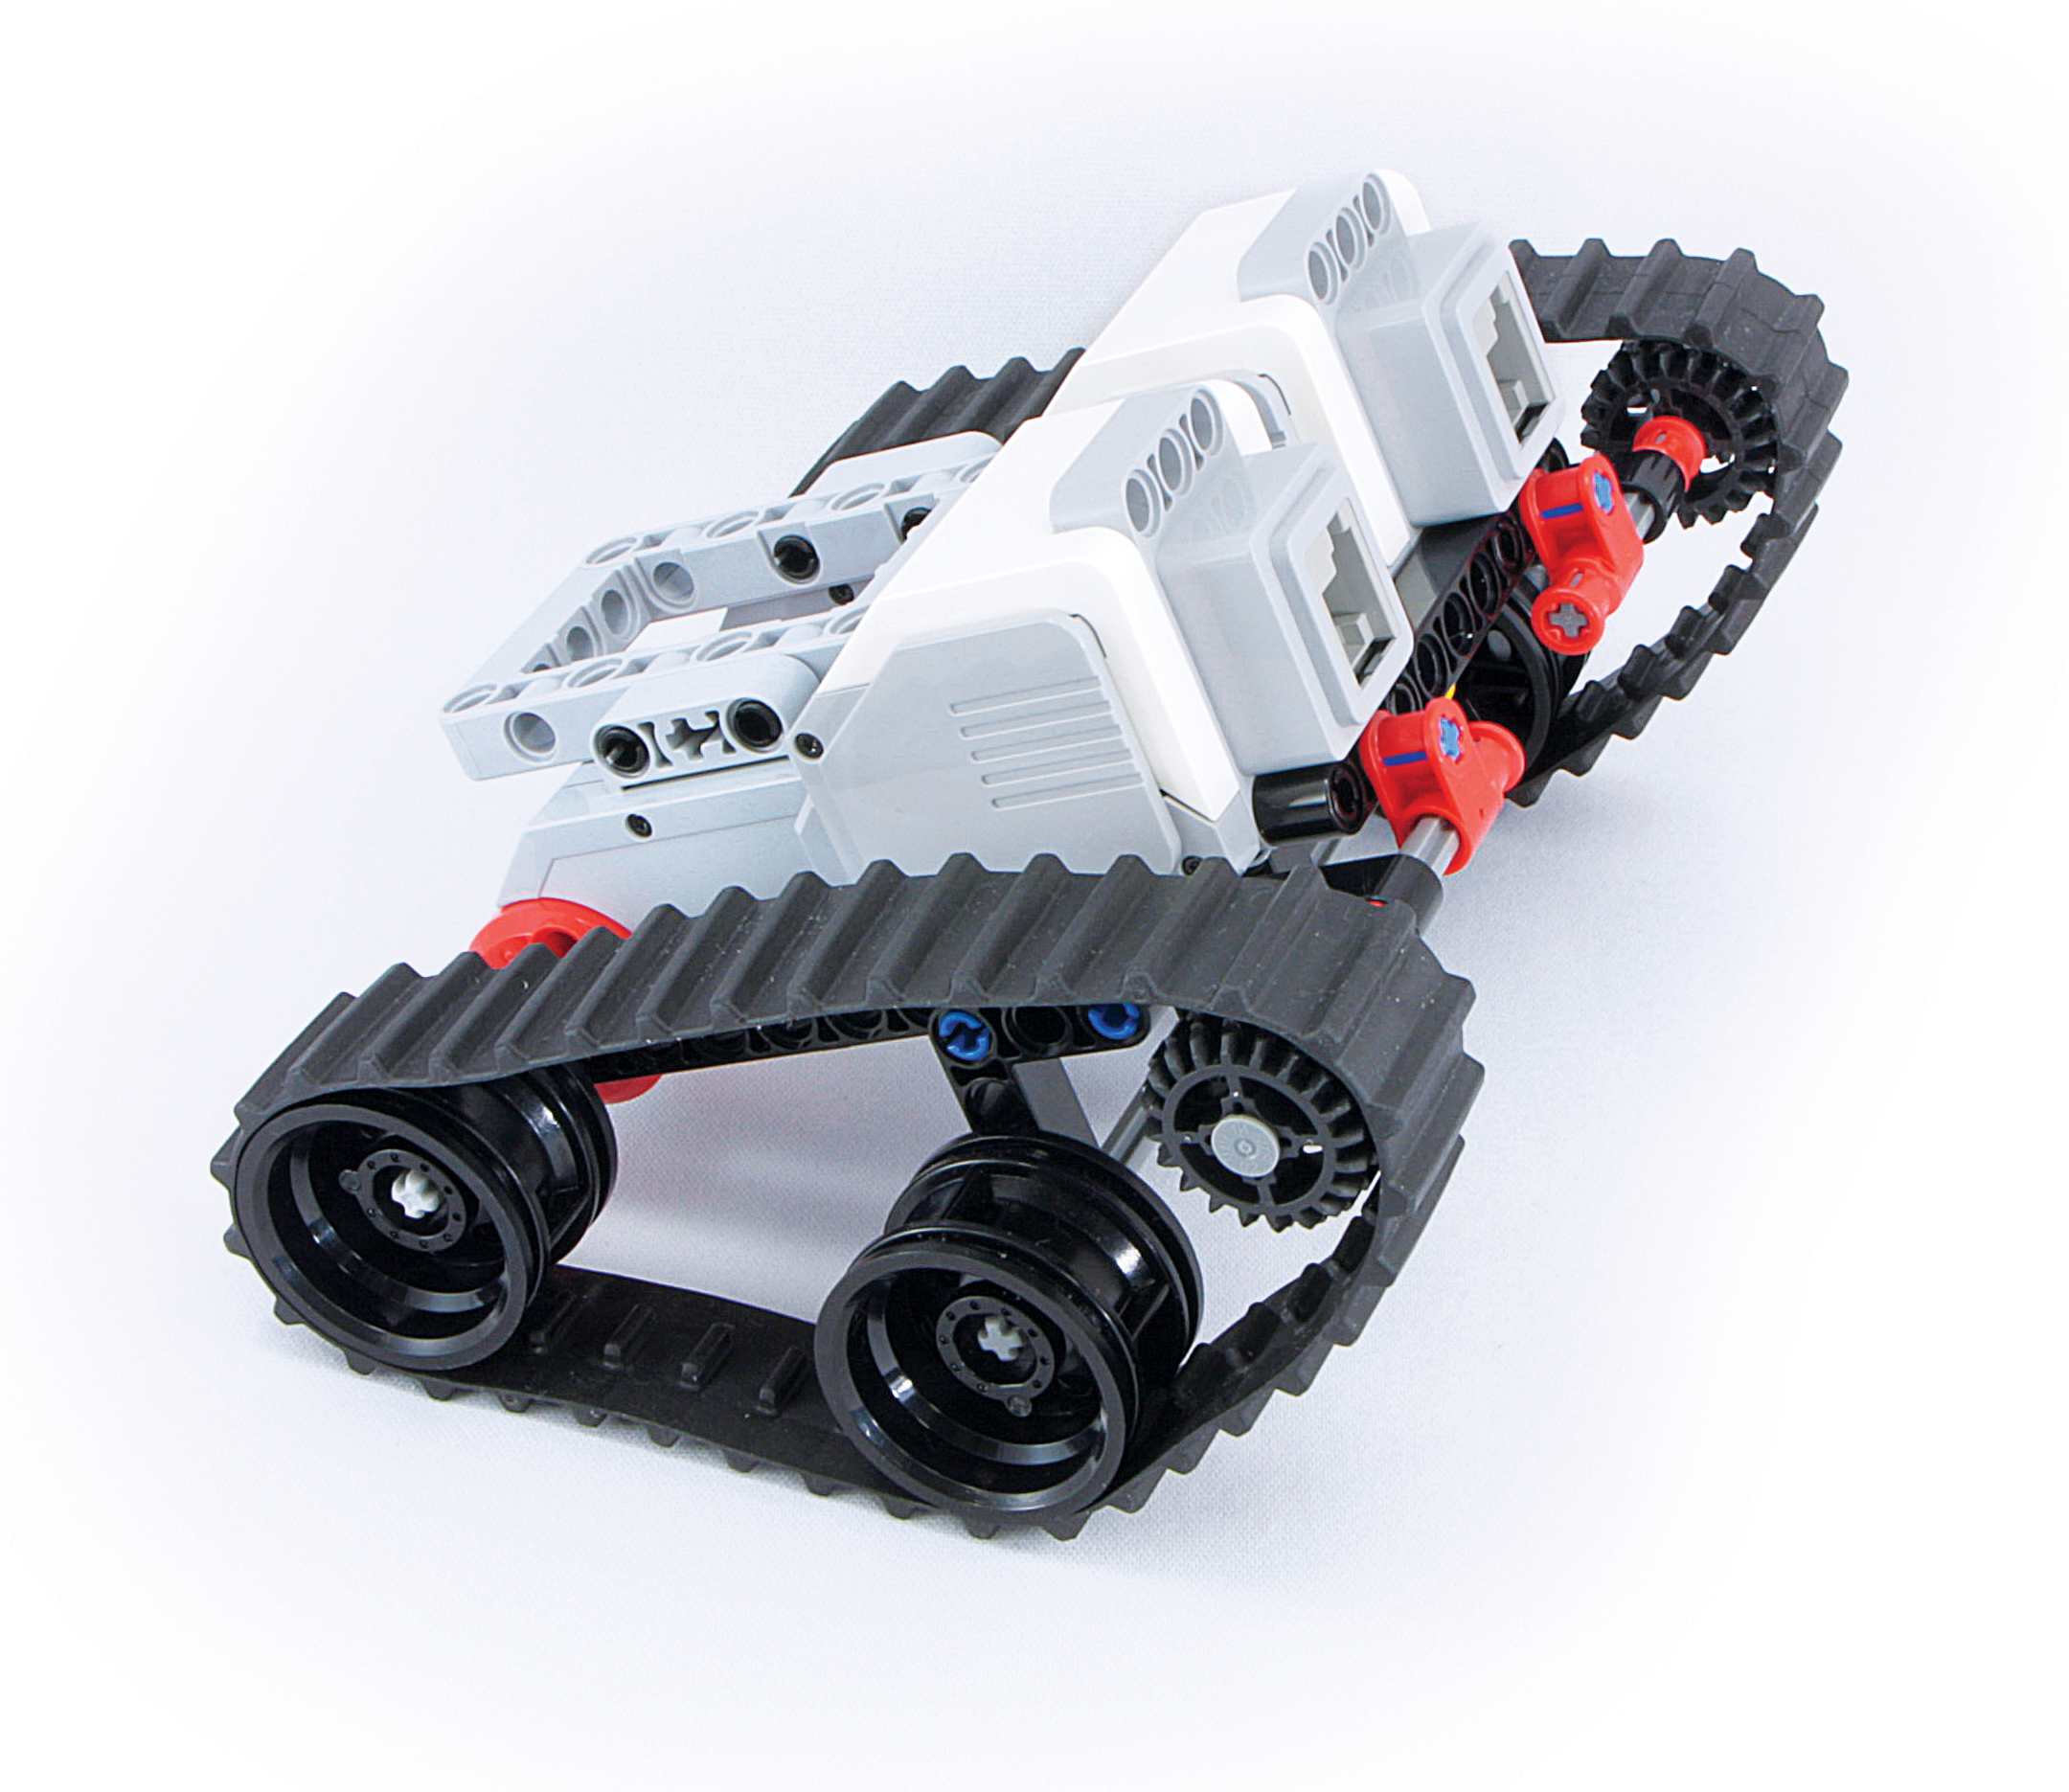 Lego Mindstorms Ev Race Car Building Instructions